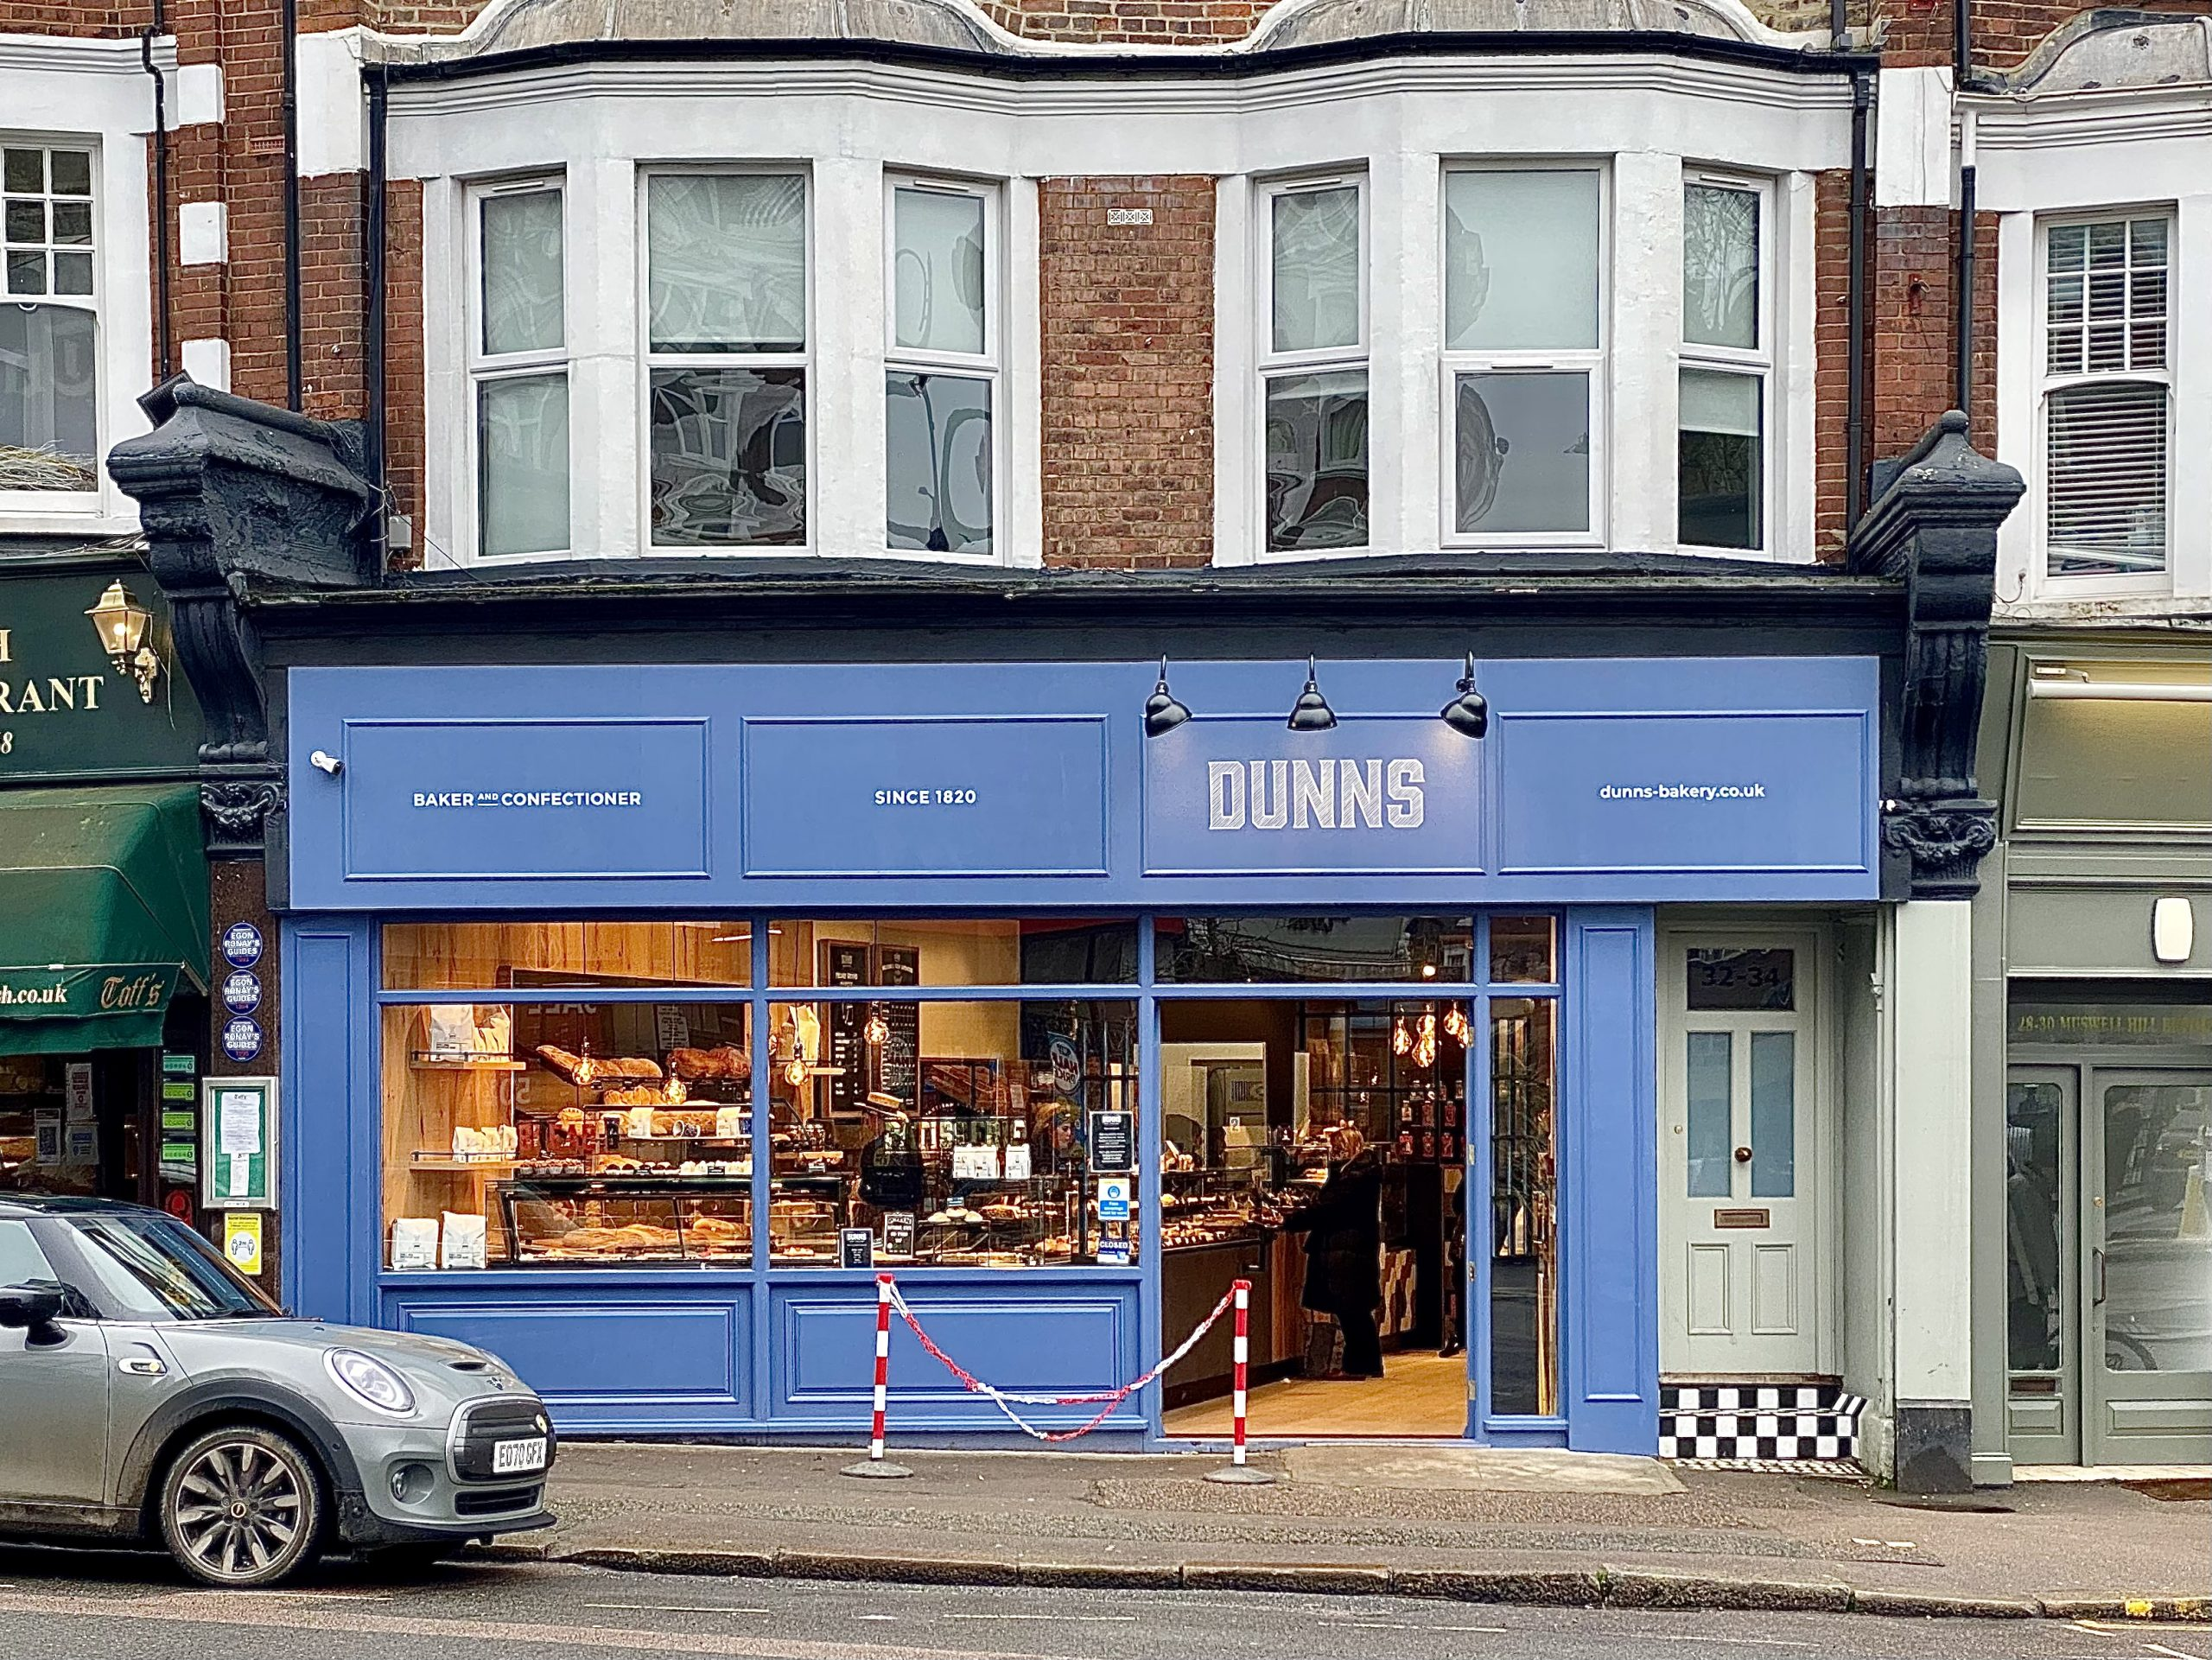 Dunn Bakery & Confectioners